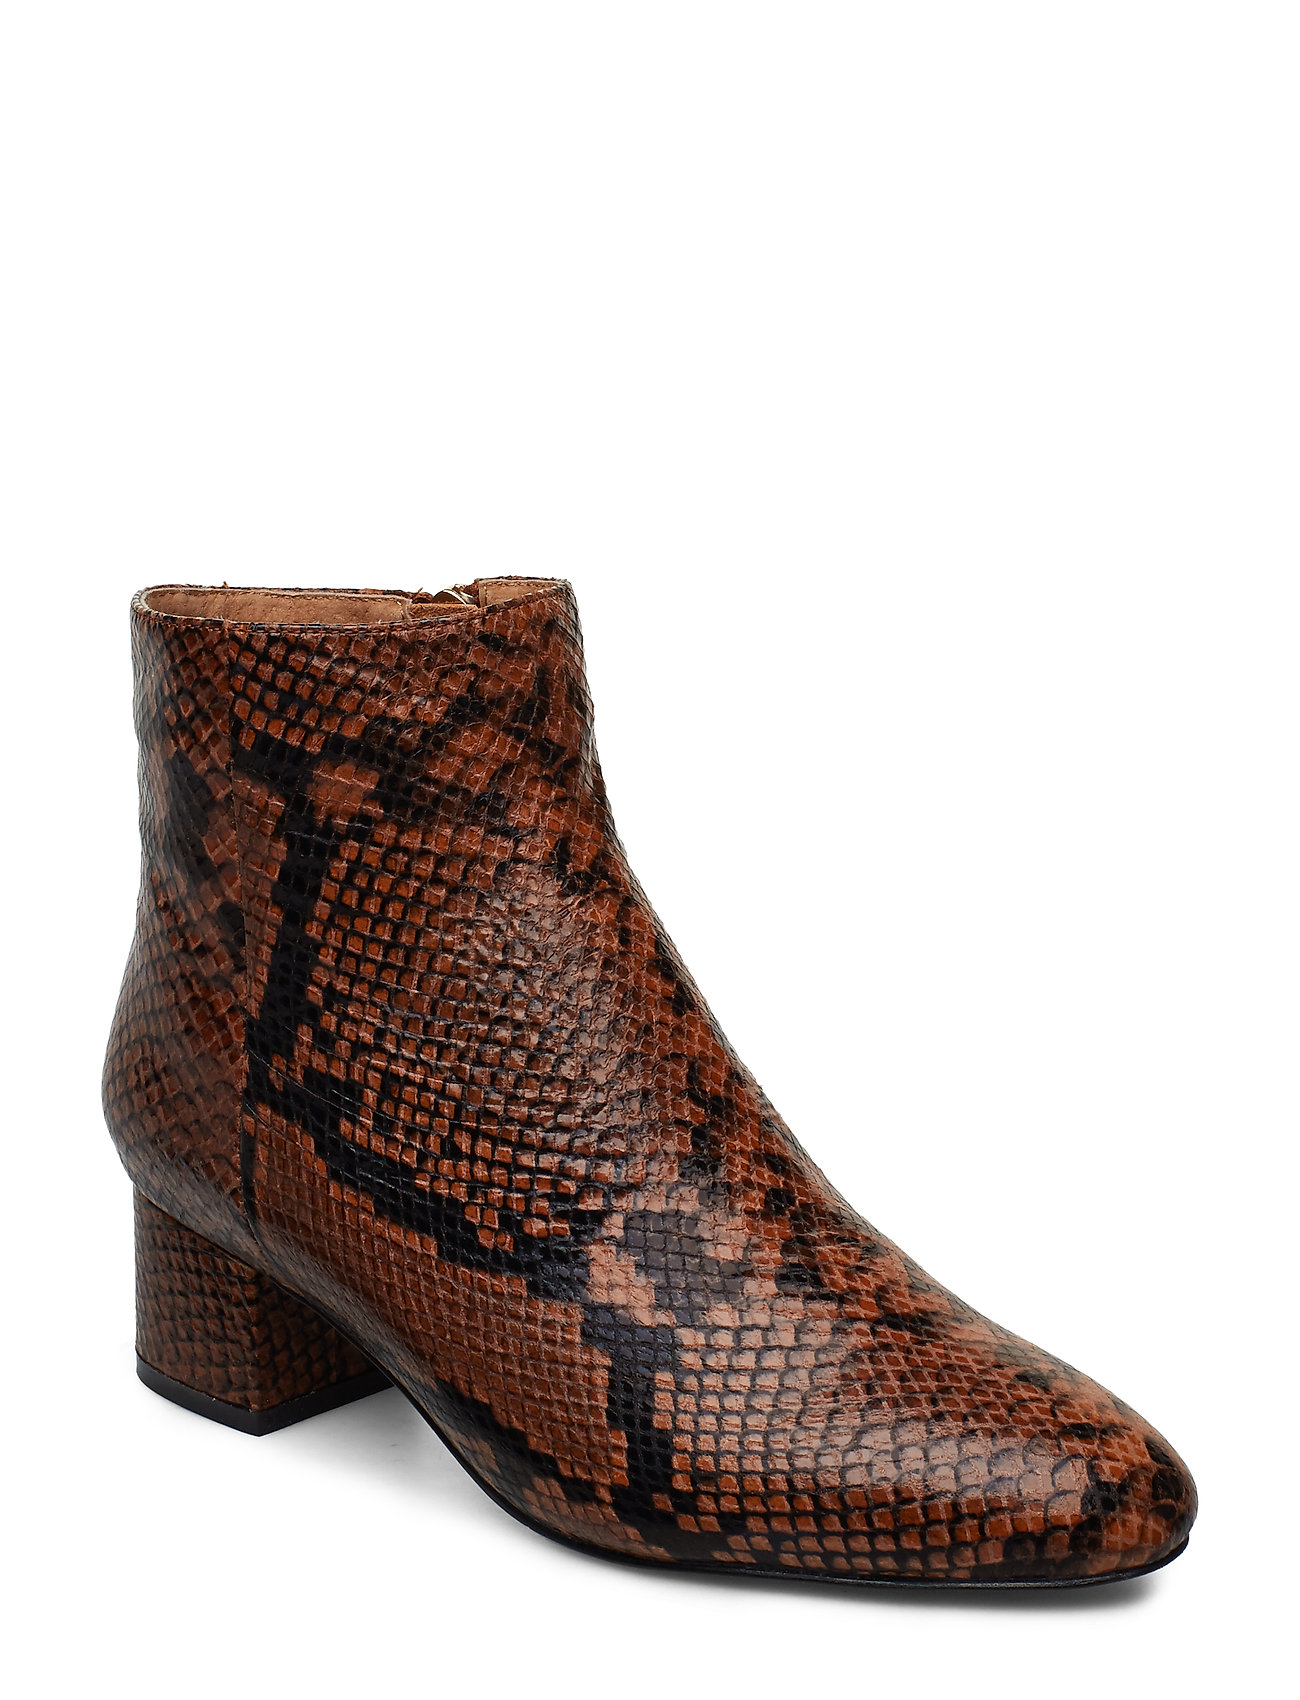 Image of Vicky Snake Shoes Boots Ankle Boots Ankle Boot - Heel Brun Shoe The Bear (3406197697)